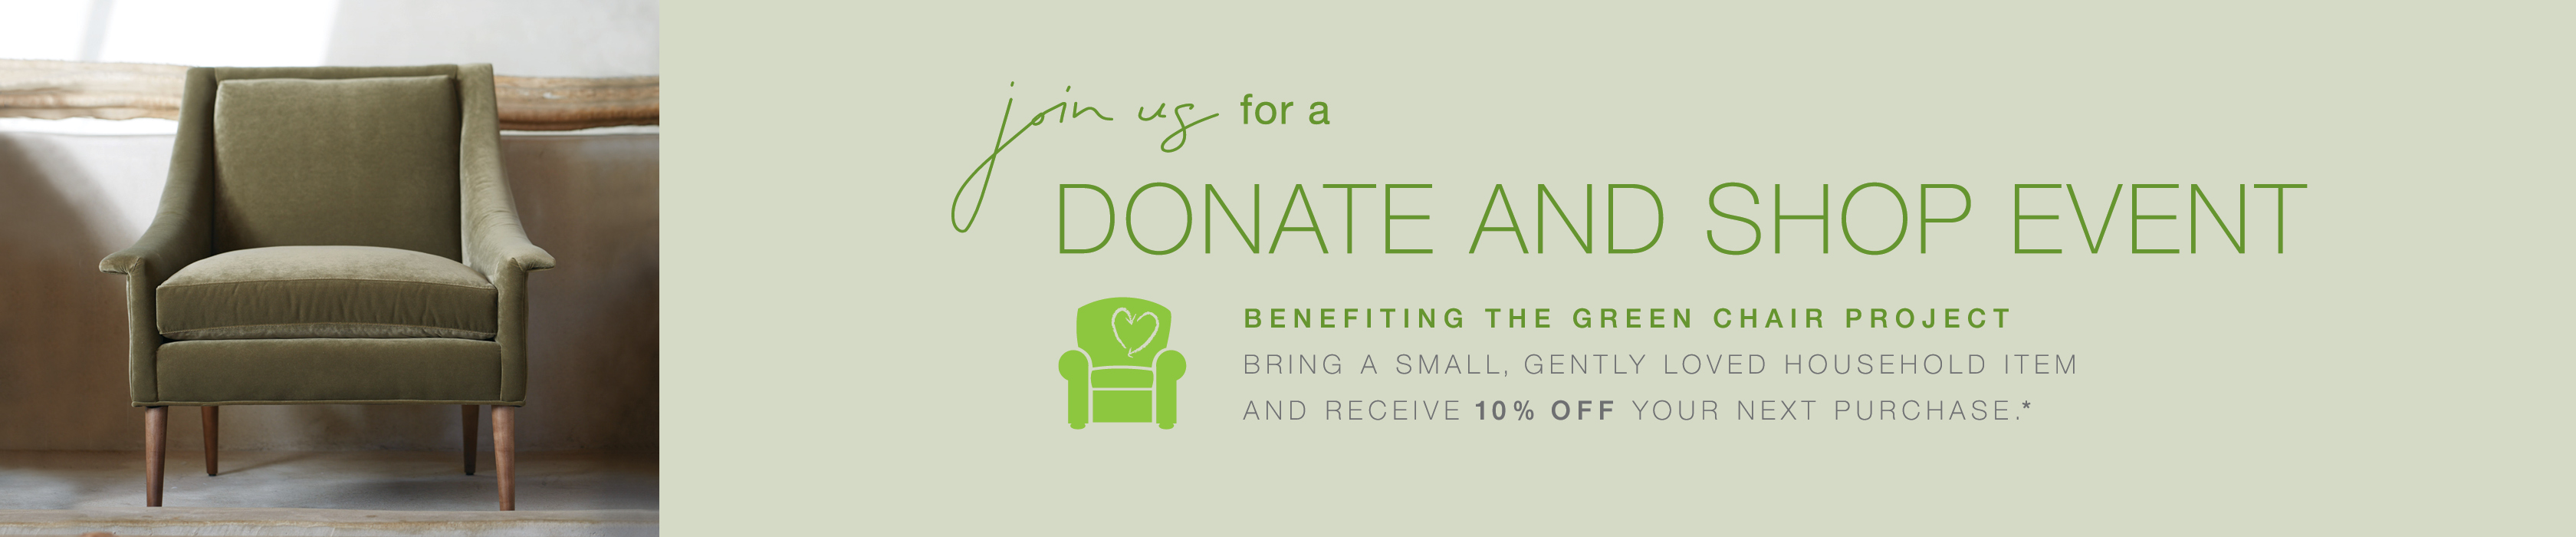 Shop for a Cause - Green Chair Raleigh